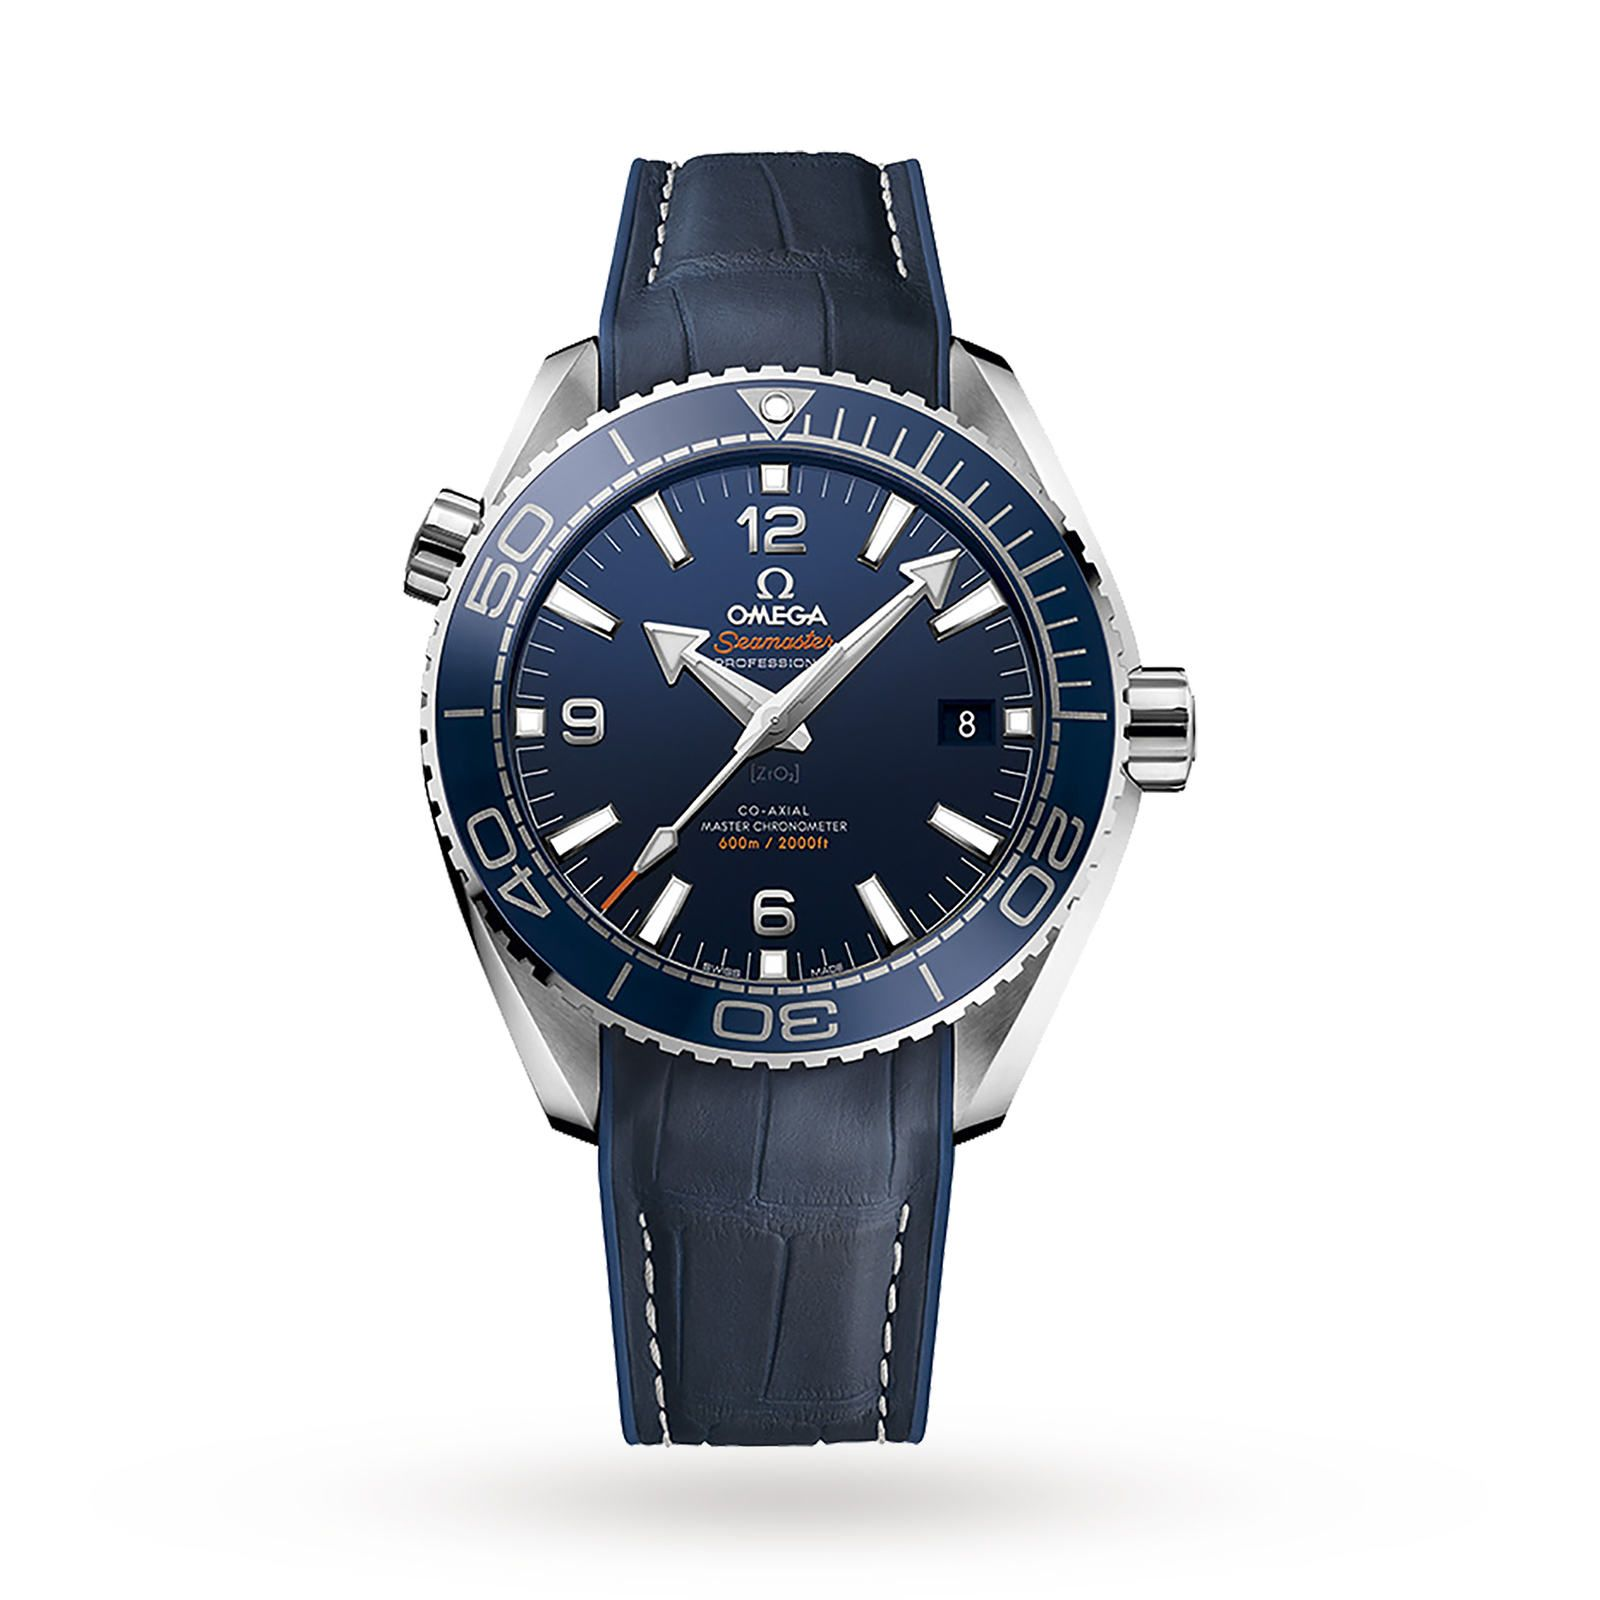 Omega Seamaster Planet Ocean 600m Co Axial 43 5mm Mens Watch O21533442103001 Luxury Watches Watches Goldsmiths Omega Seamaster Planet Ocean Omega Omega Co Axial